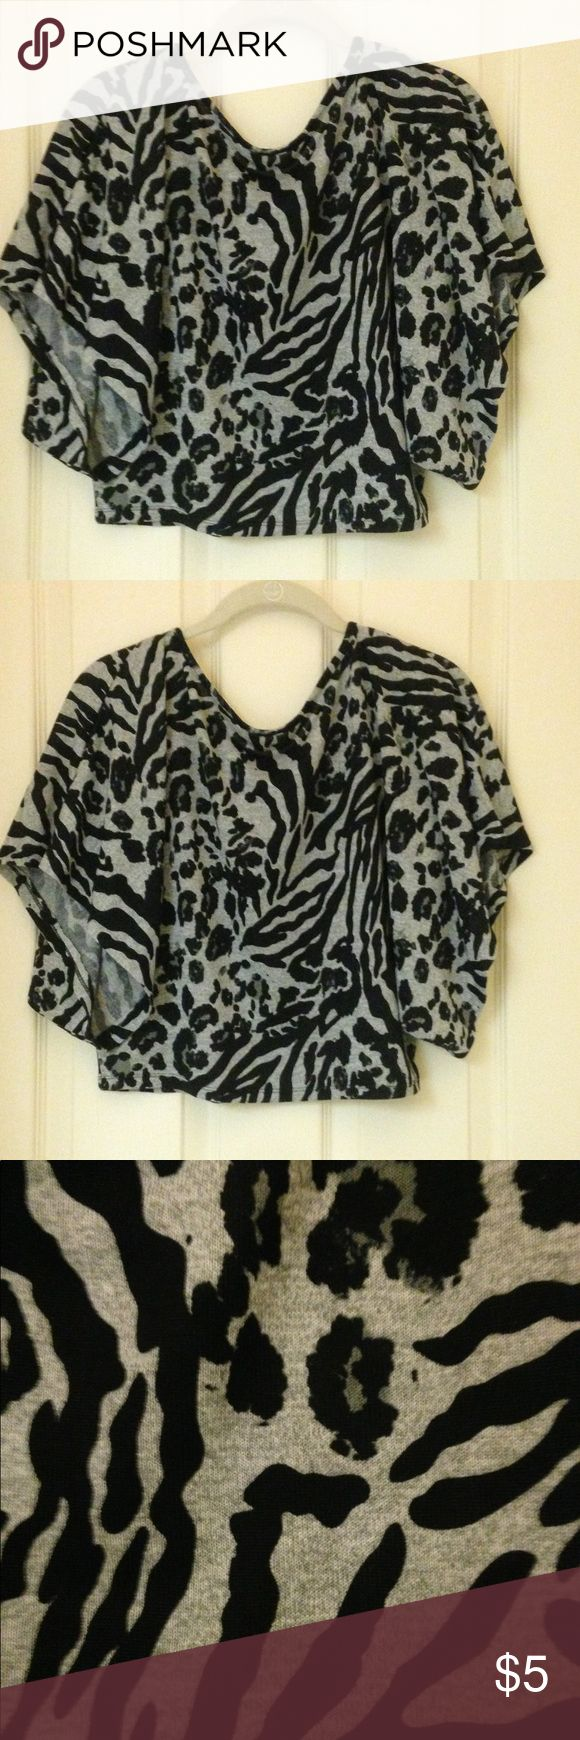 Animal Print Dolman Style Crop Top Black and Gray Animal Print Crop Top. Size L. Measurements are Length 17, Bust 18 and the bottom of the Crop opening is 18 inches across. Excellent Condition. No tags. Tops Crop Tops